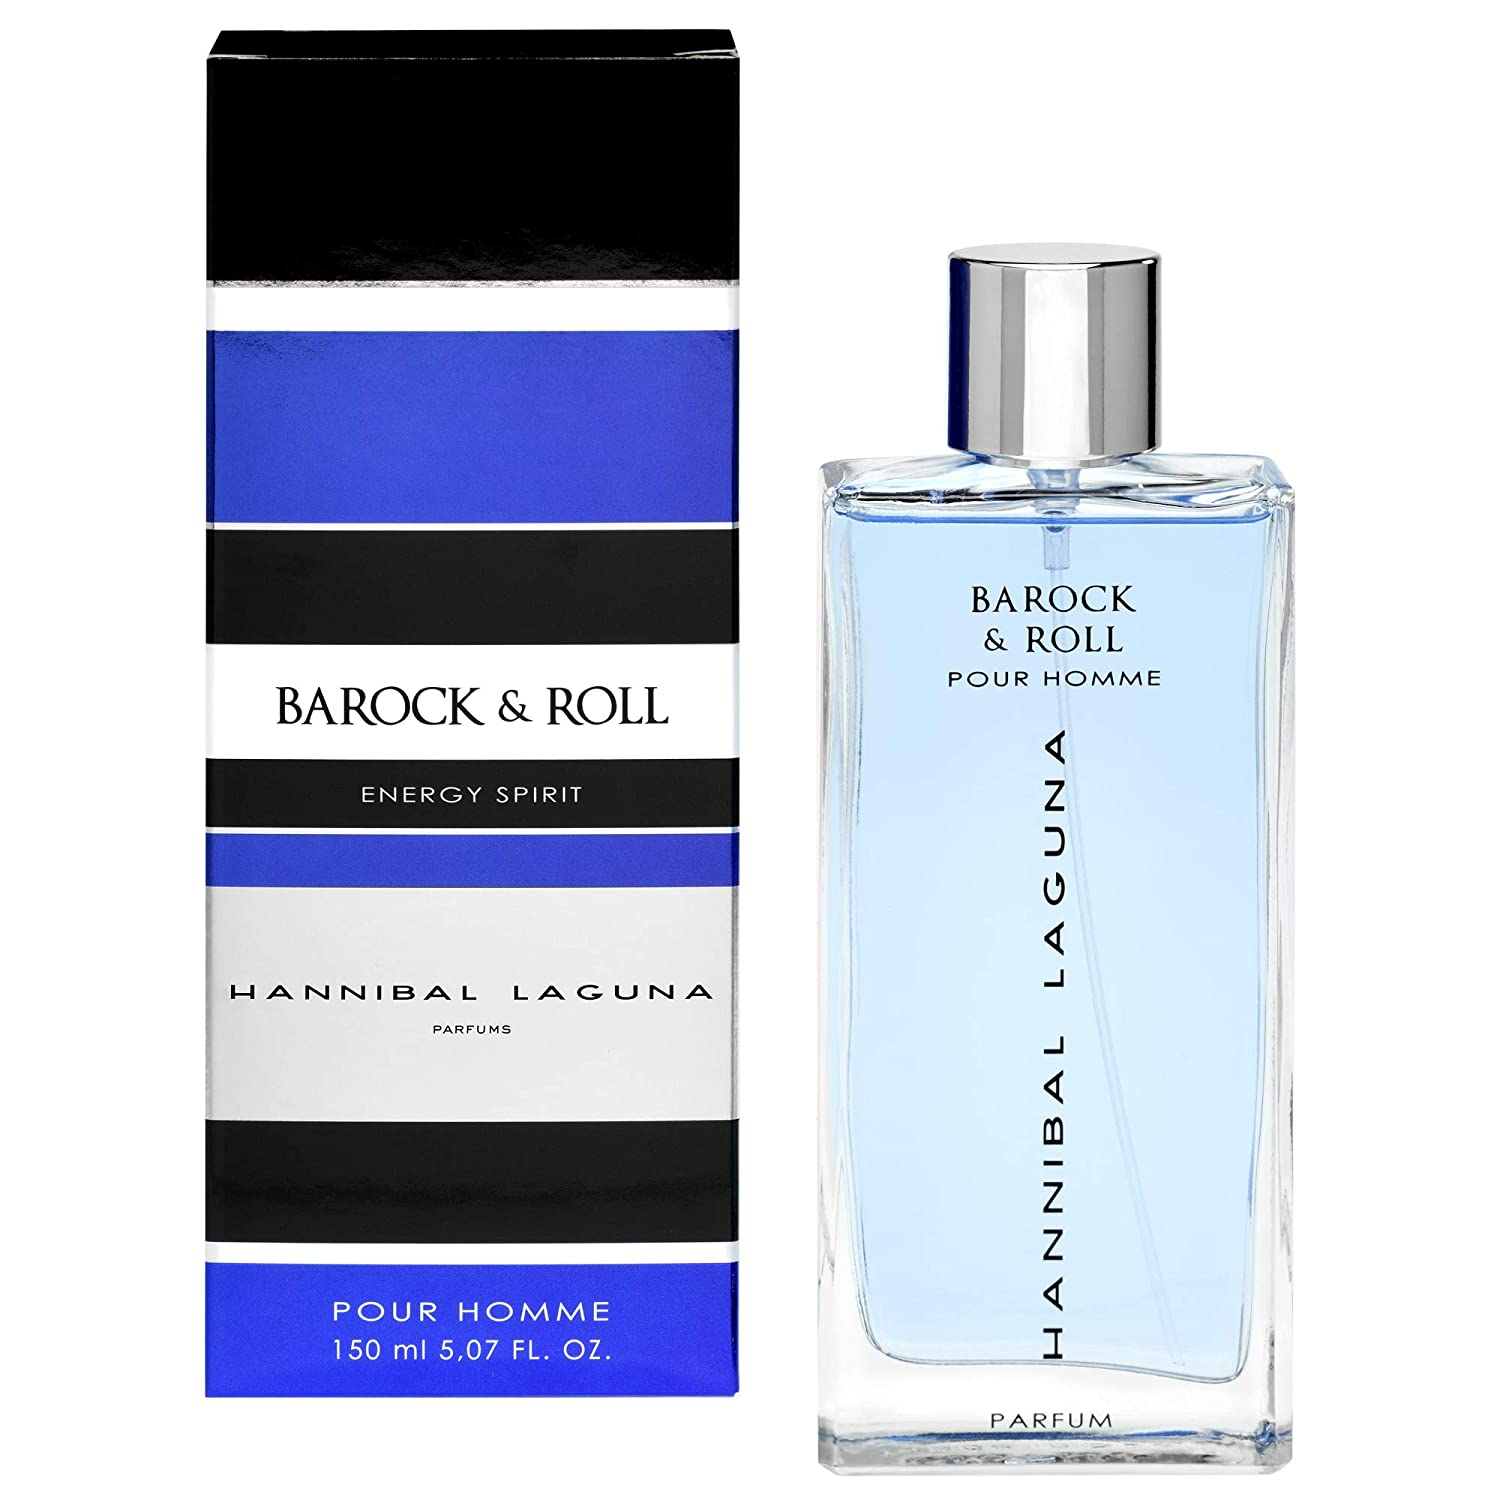 HANNIBAL LAGUNA Perfume Men Barock Roll Vapo - 150 ml (110525): Amazon.es